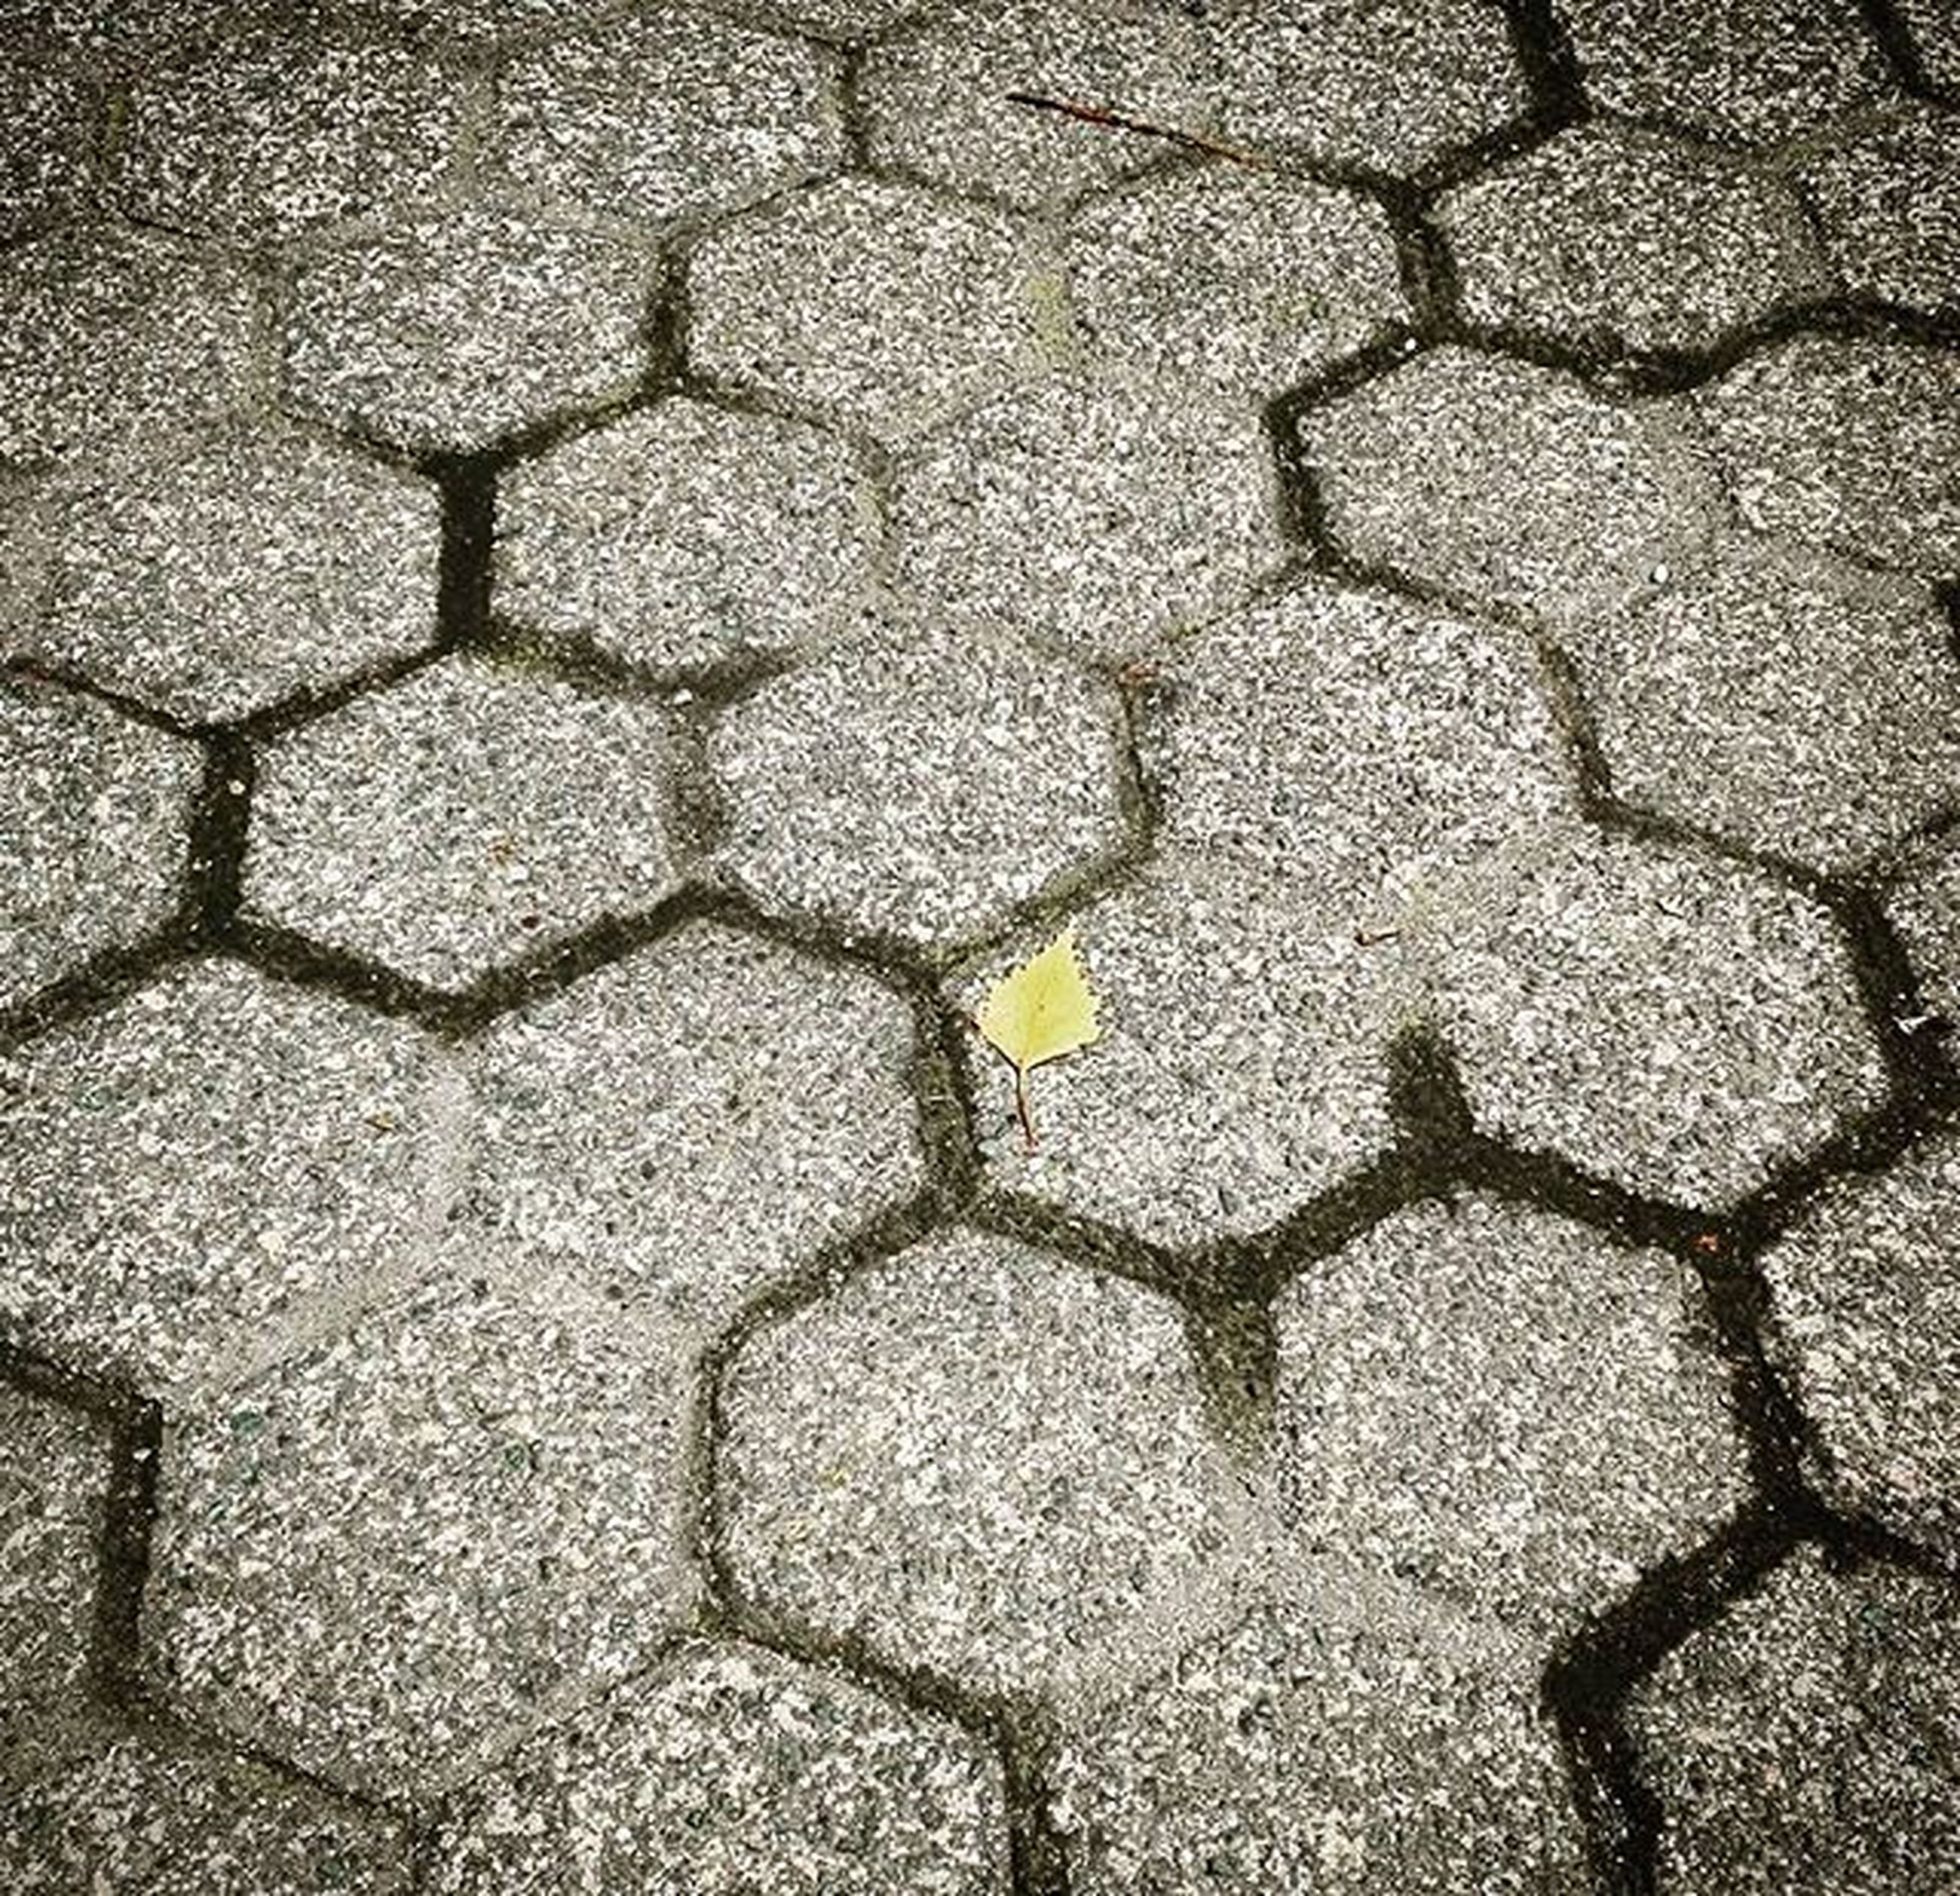 full frame, backgrounds, textured, high angle view, pattern, cobblestone, stone - object, no people, directly above, close-up, rough, day, outdoors, street, cracked, ground, pebble, paving stone, stone, sunlight